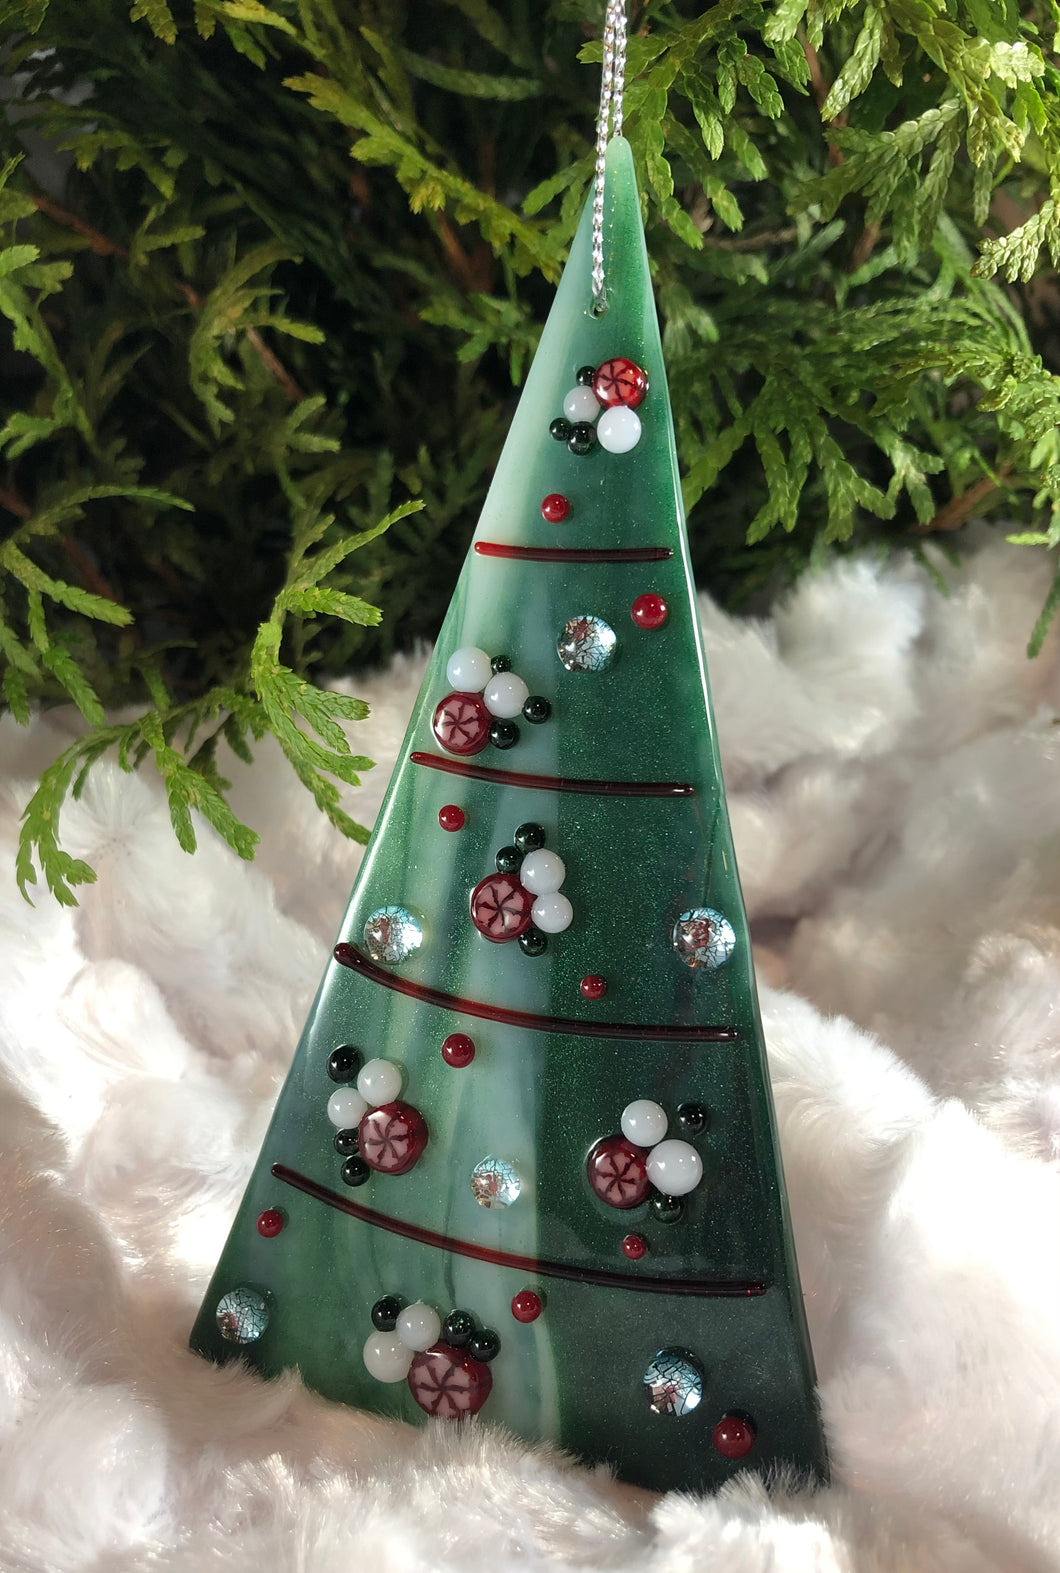 Holiday ornaments - Aventurine Streaky with Poinsettias